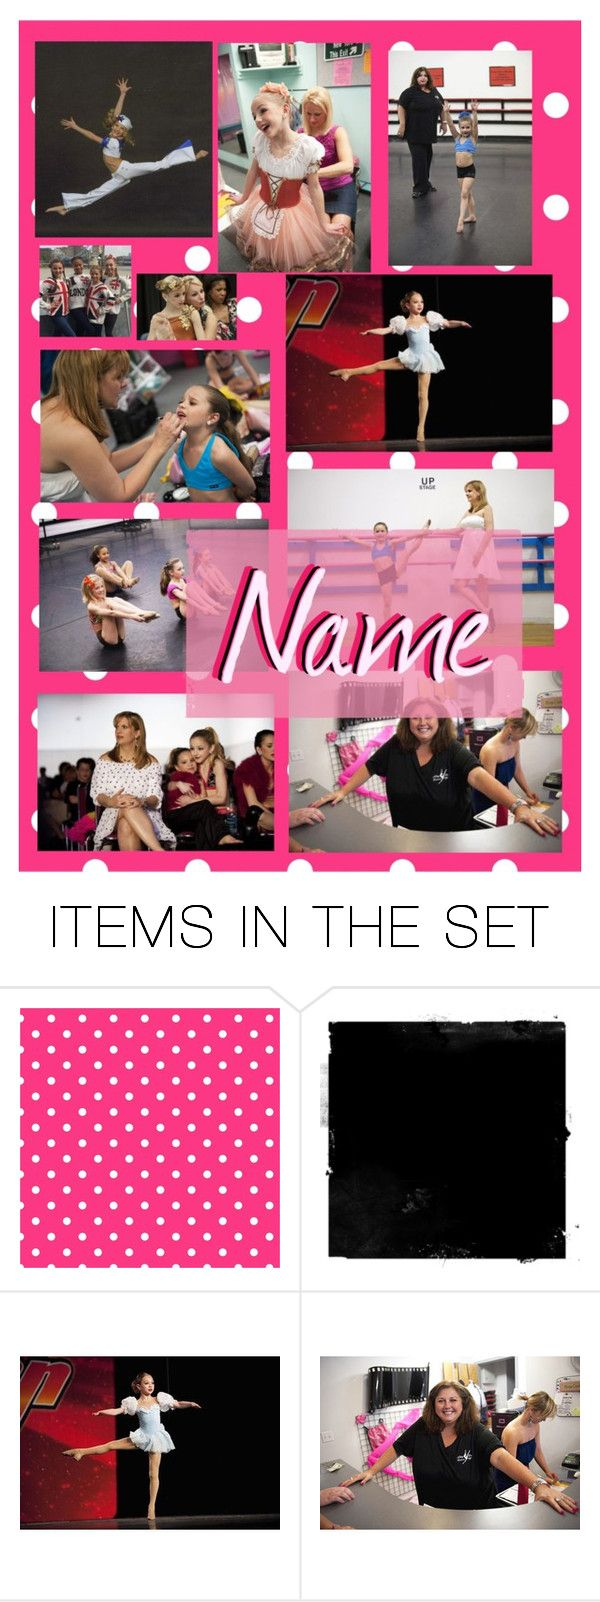 """""""Dance moms wallpaper"""" by wallpapersforvolleyballgirl12345 ❤ liked on Polyvore featuring art"""